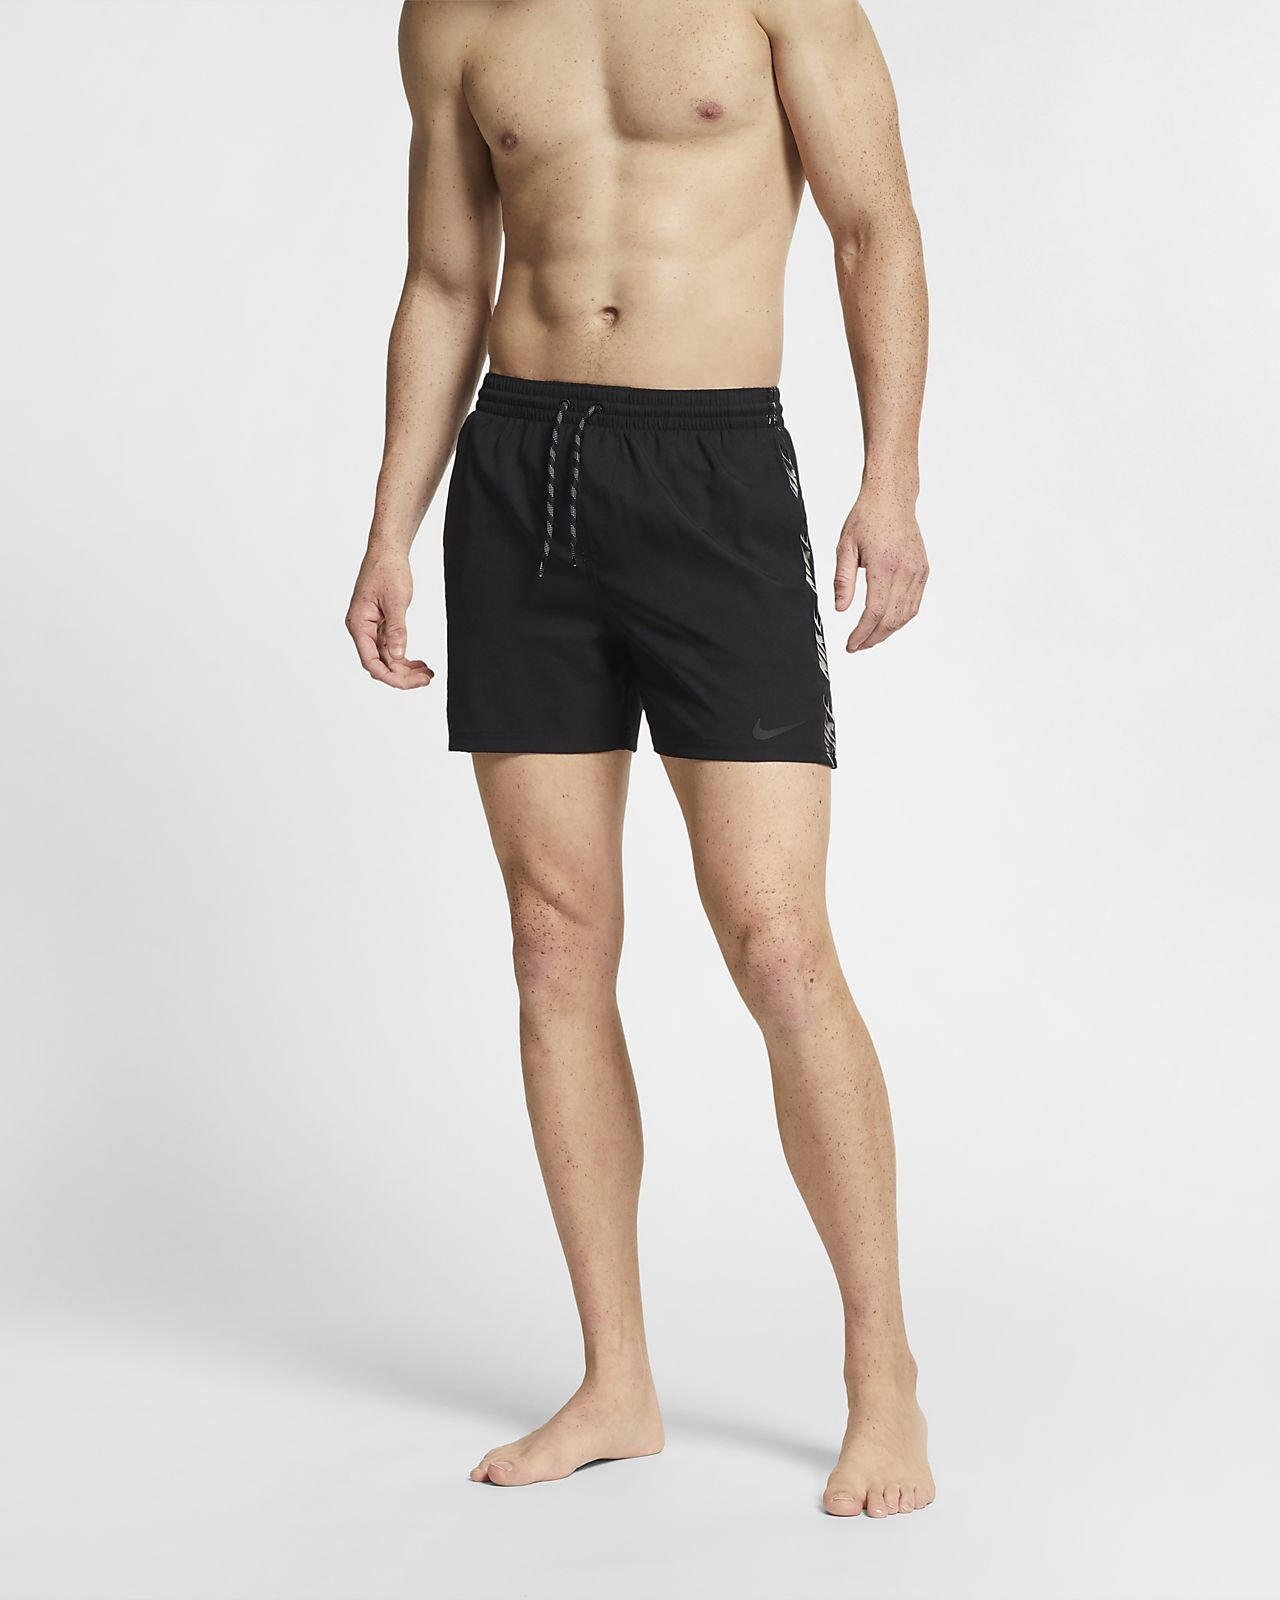 Nike Swim Logo Splice Racer Men's 13cm (approx.) Swimming Trunks